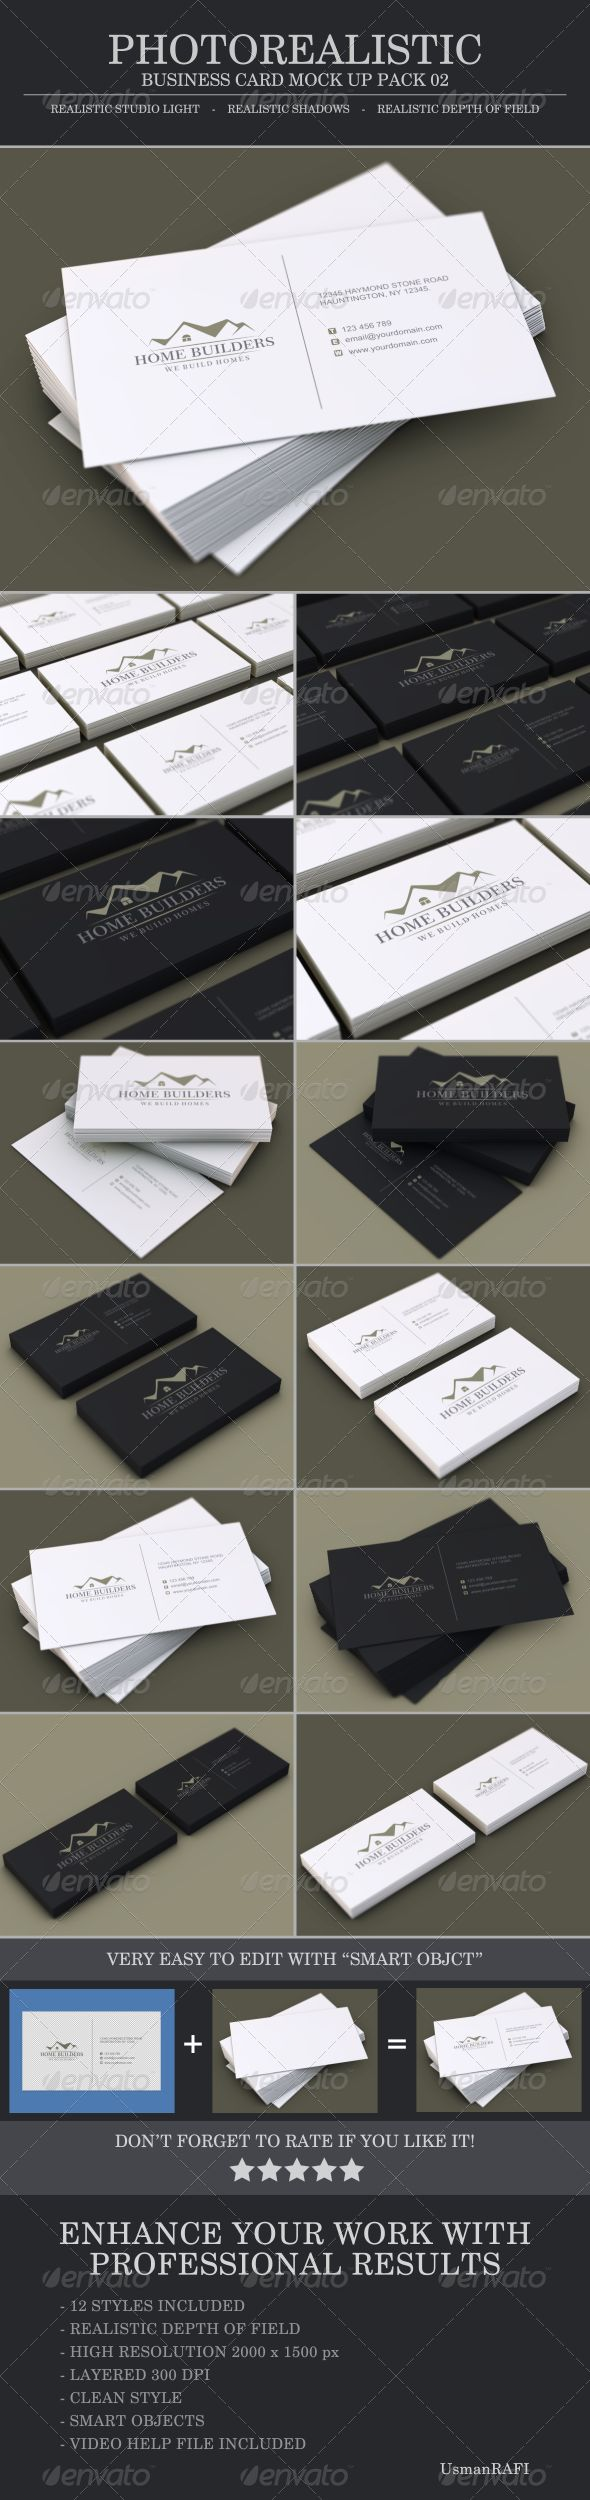 12 best business images on Pinterest | Corporate identity, Business ...